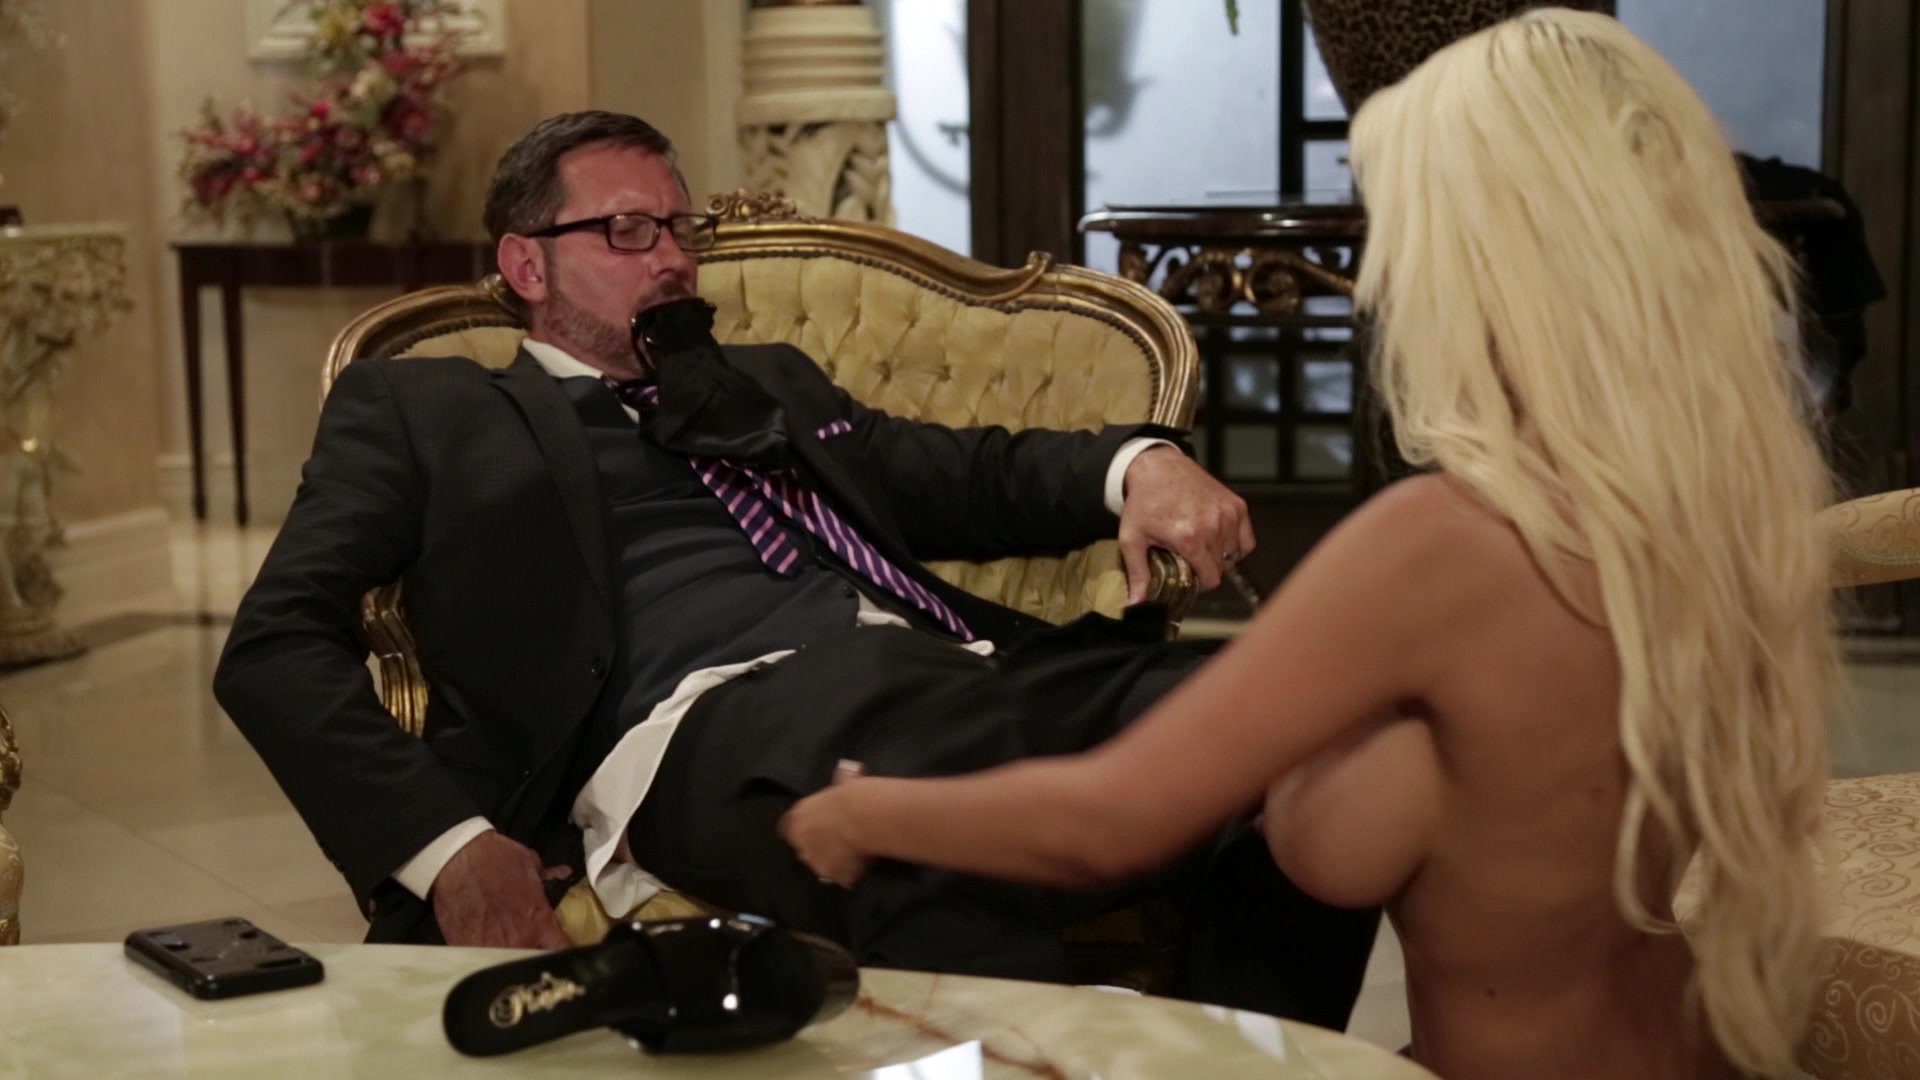 Scene with Jessica Drake - image 18 out of 20